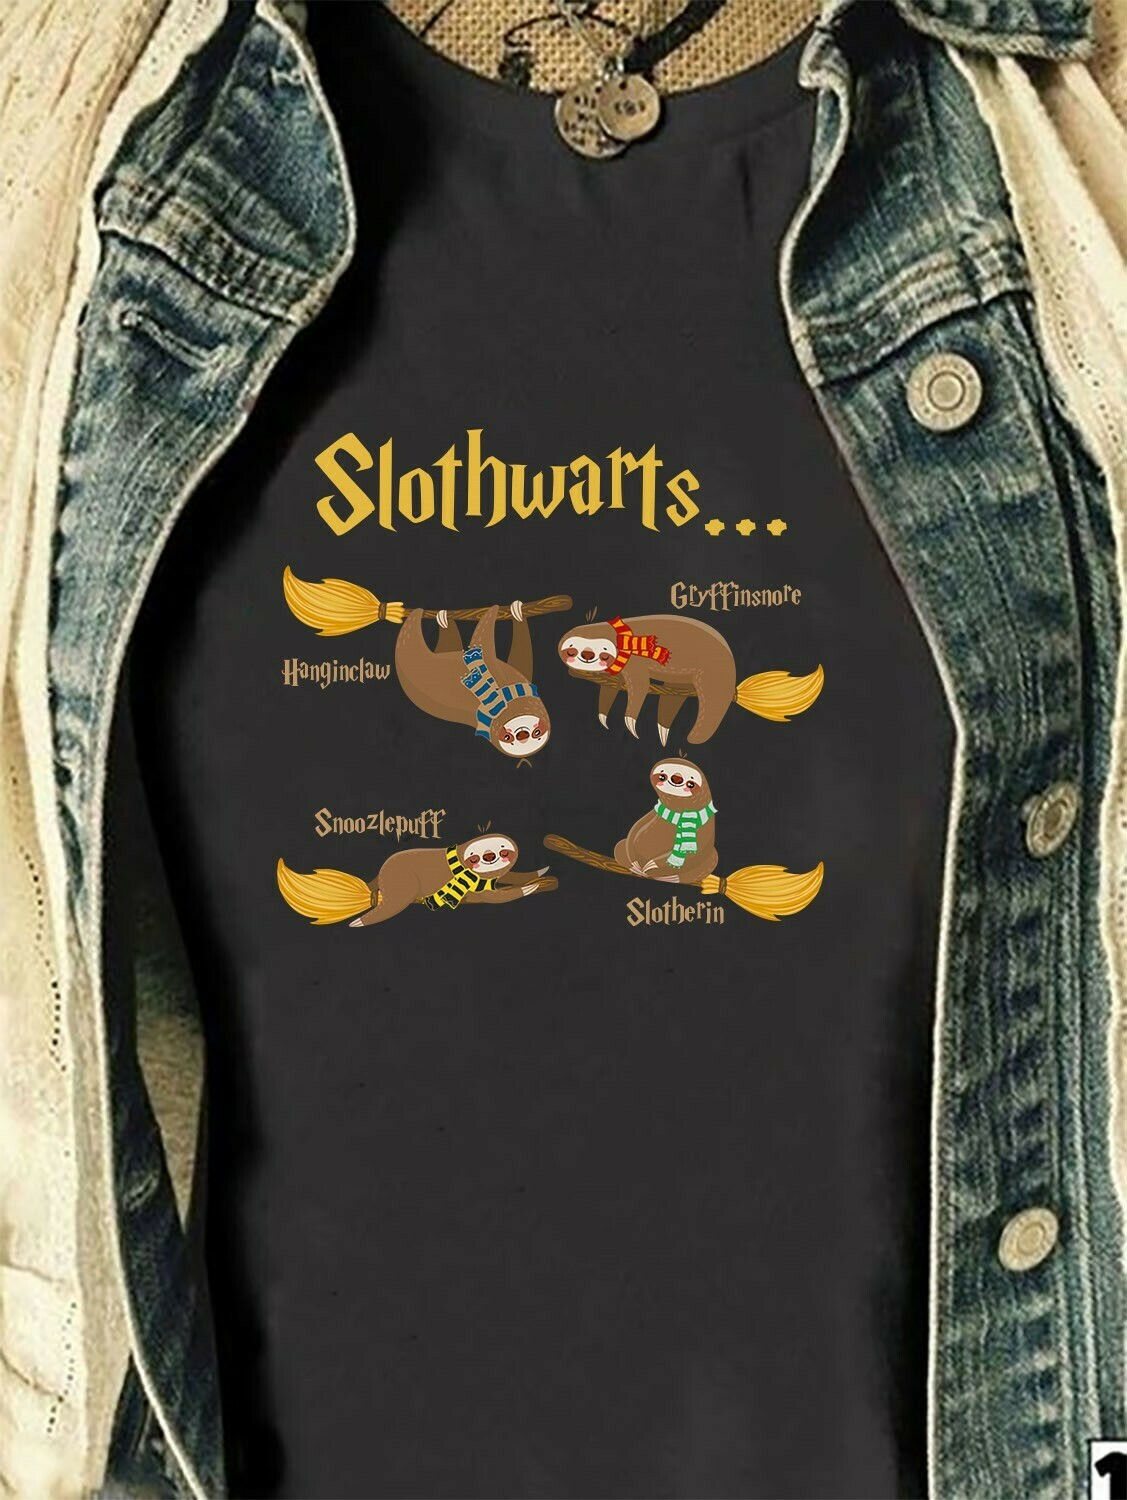 Slothwarts Witch Magic wizard shirt for Sloth enthusiasts Sloth lovers,Funny Sloth T shirt gift for friends Team Love Harry Potter Long Sleeve Sweatshirt Hoodie Jolly Family Gifts